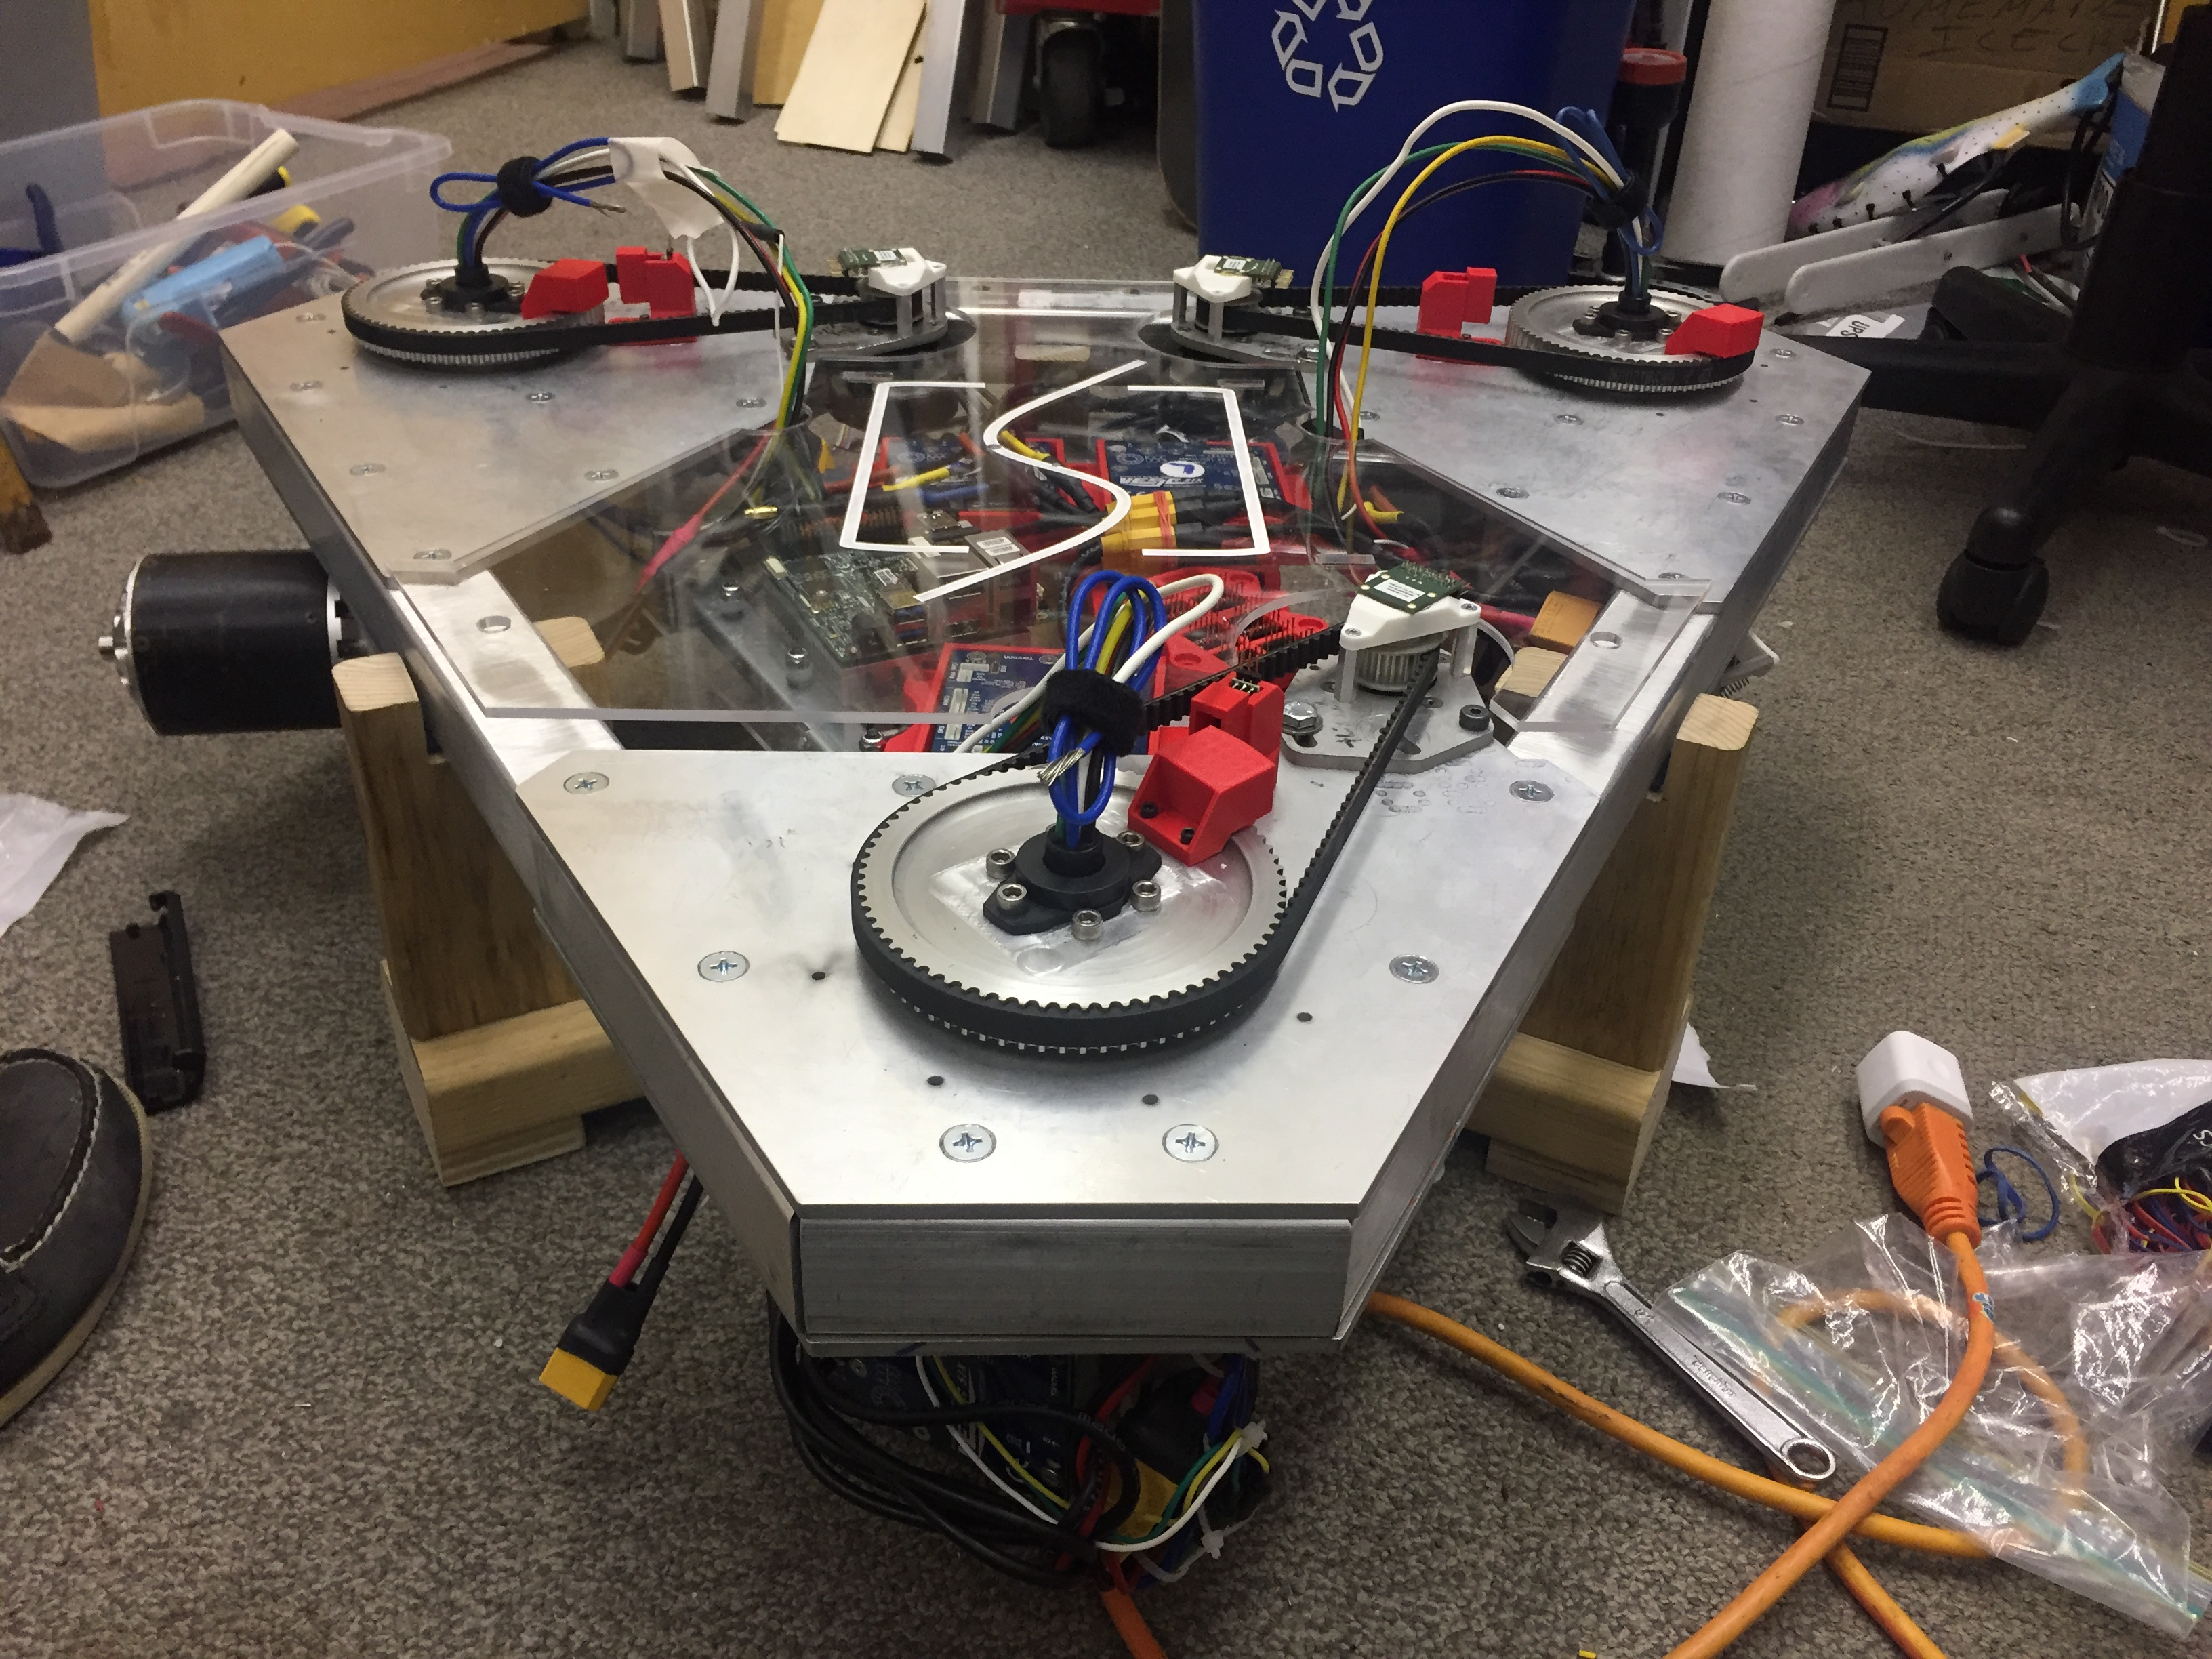 robotic platform, Swerve Robotic Platform Relies on SICK LiDAR Sensor